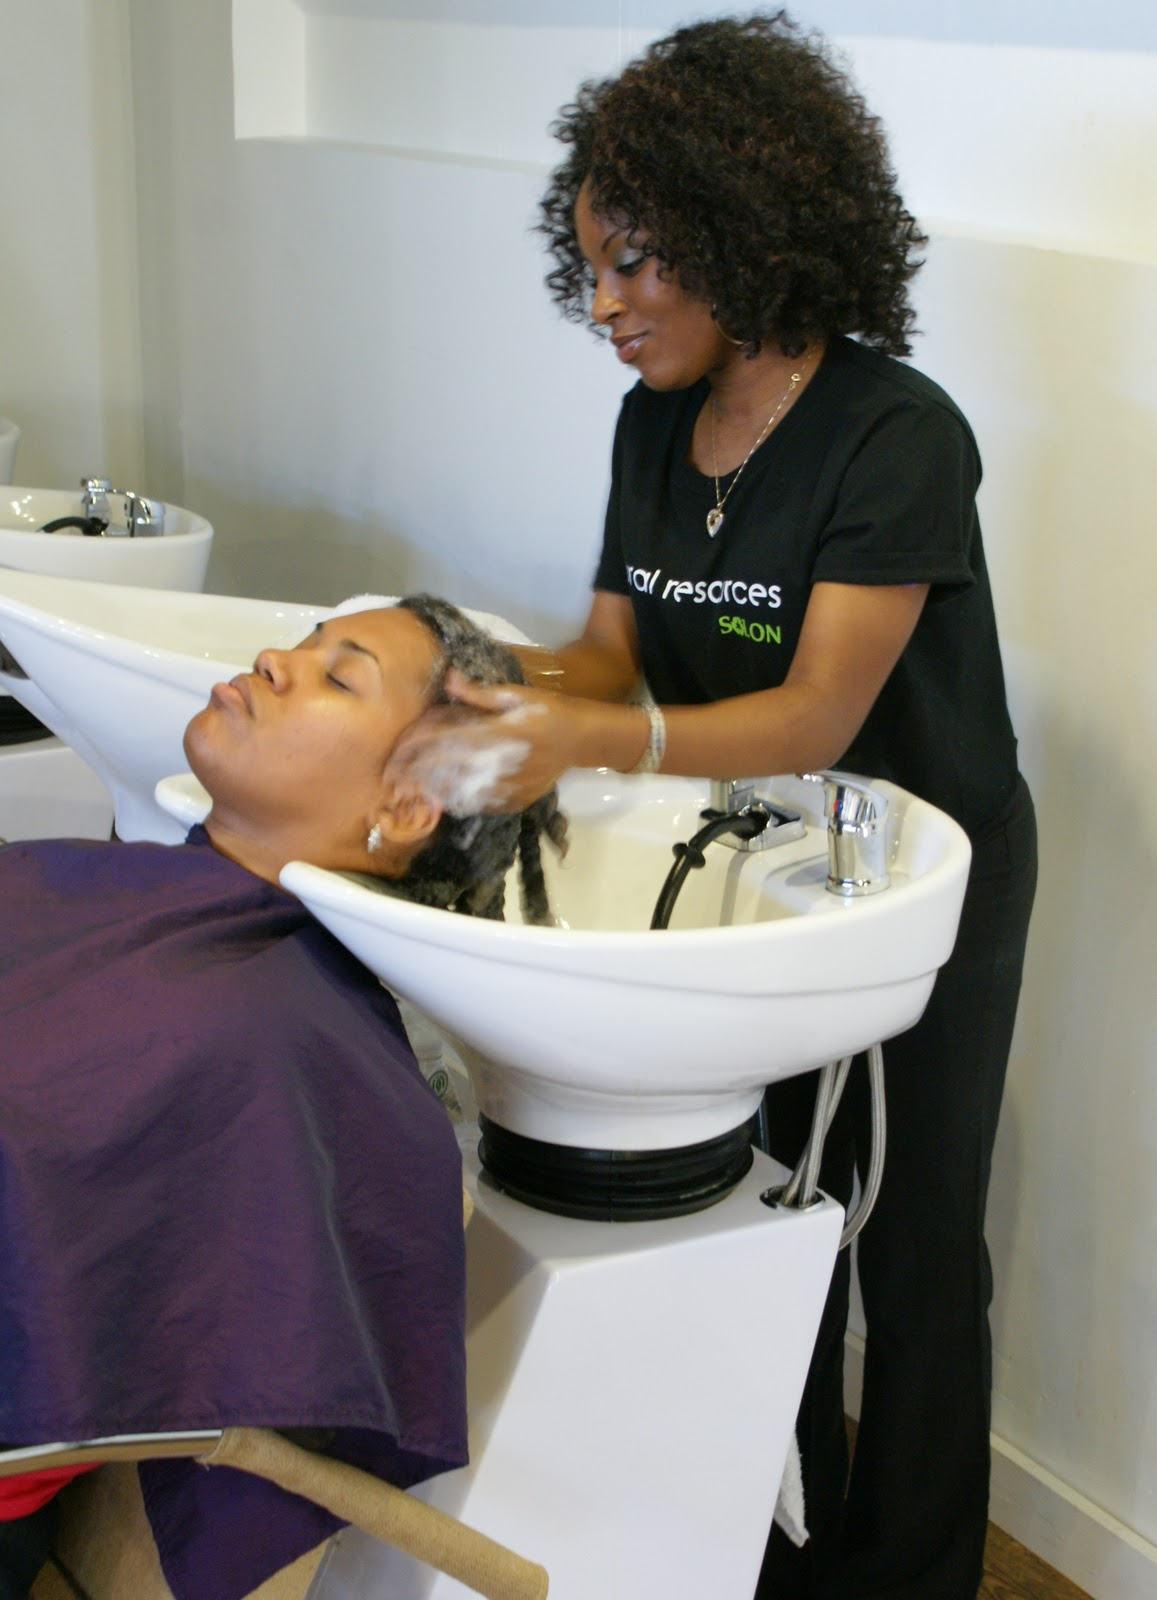 What Natural Resources Are Used In A Hair Salon